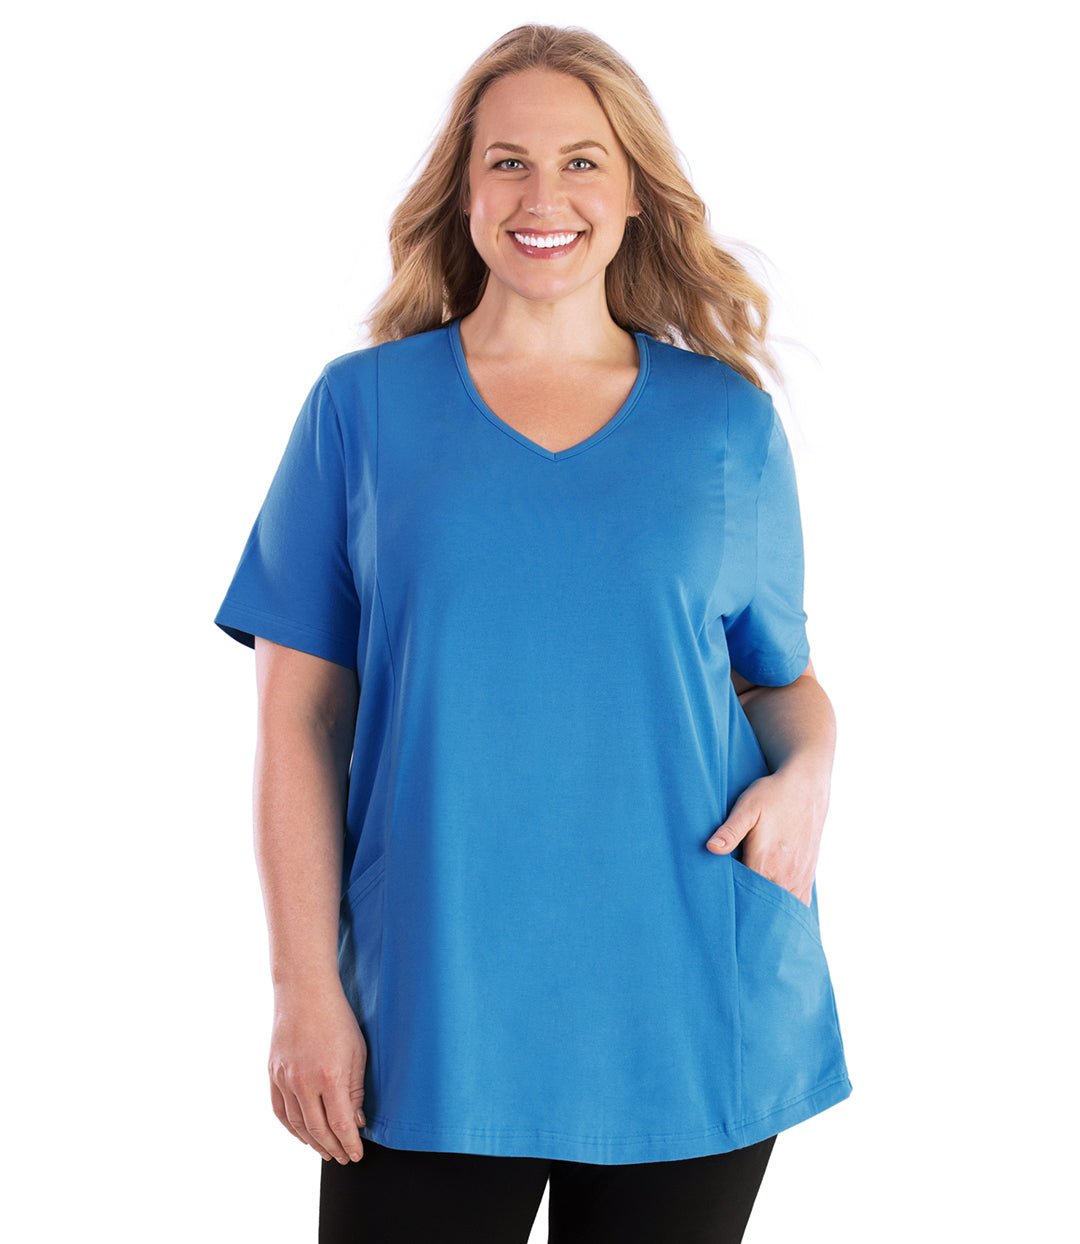 Stretch Naturals Pocketed V-neck Short Sleeve Top-Plus Size Activewear & Athletic Clothing-Hop Wo Trading Co Ltd-1X-Dutch Blue-JunoActive